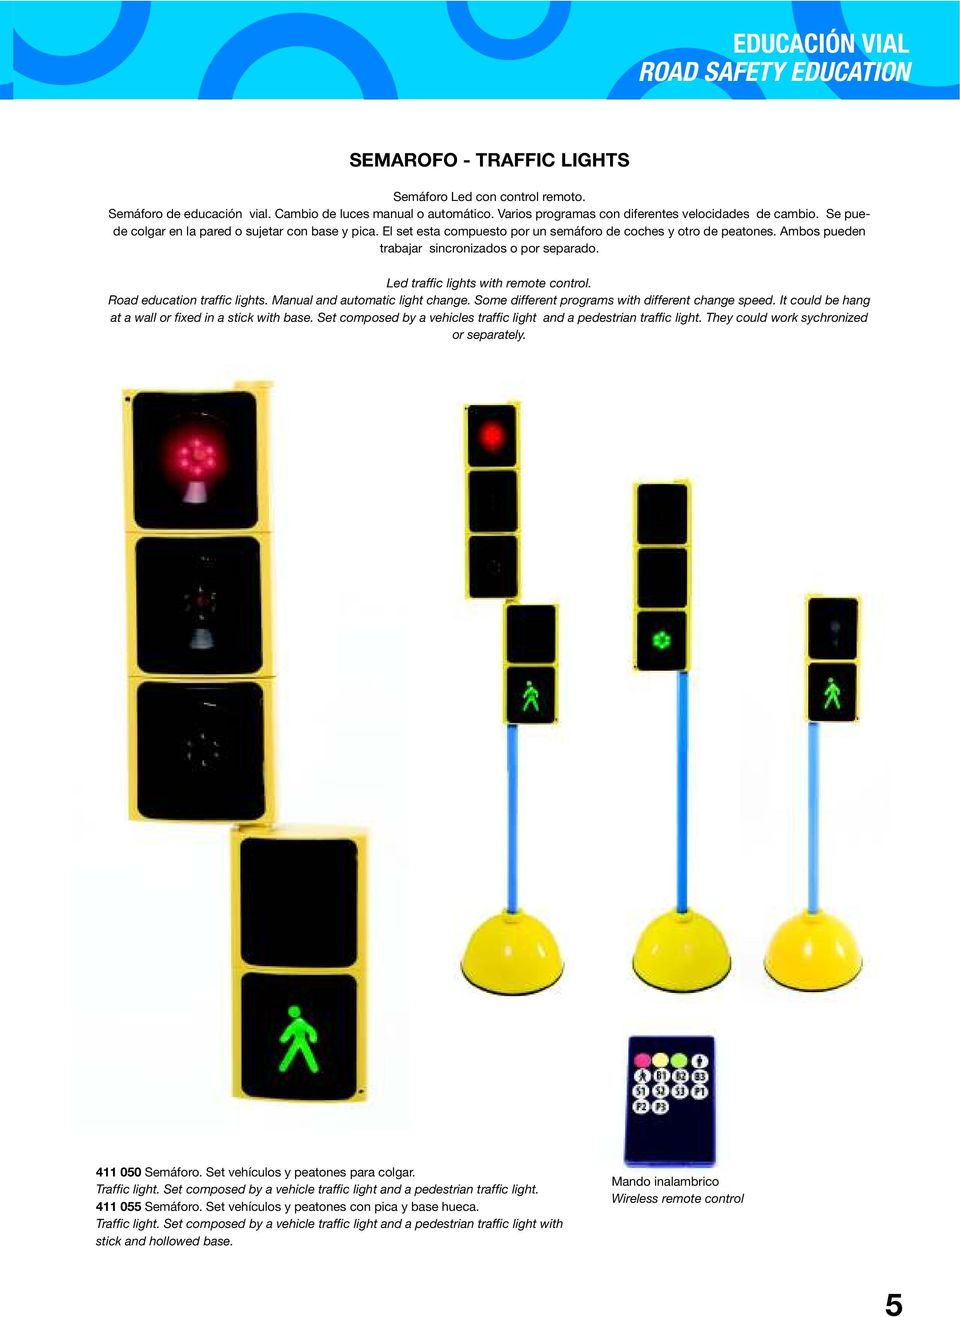 Led traffic lights with remote control. Road education traffic lights. Manual and automatic light change. Some different programs with different change speed.